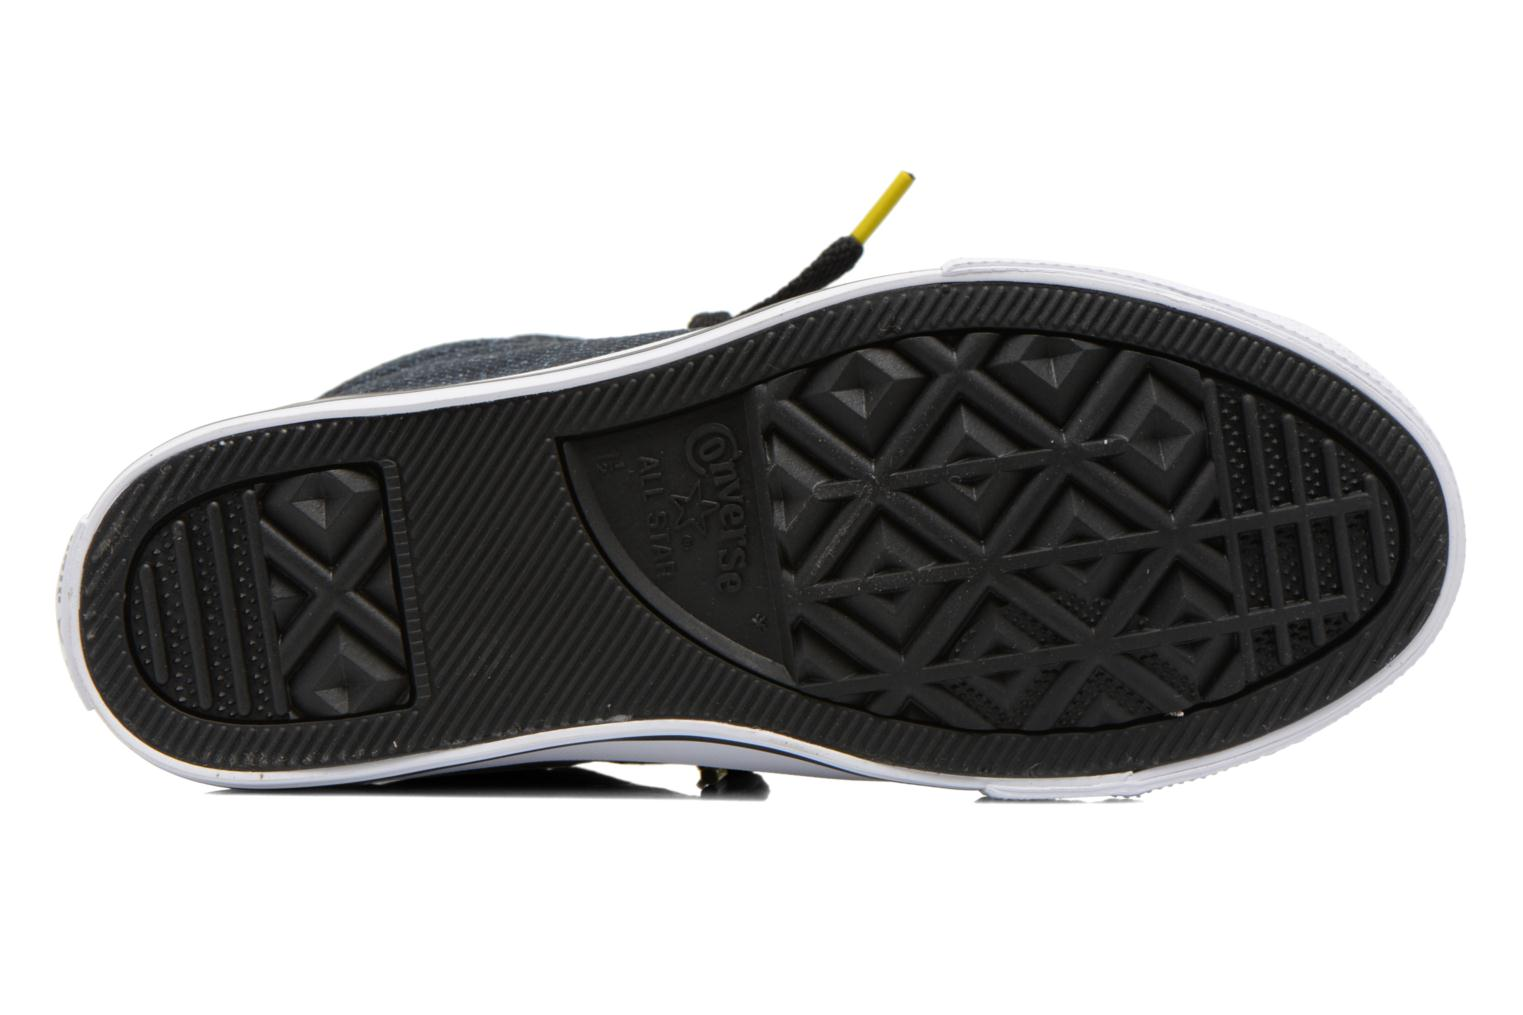 Chuck Taylor All Star Street Mid Black/white/yellow